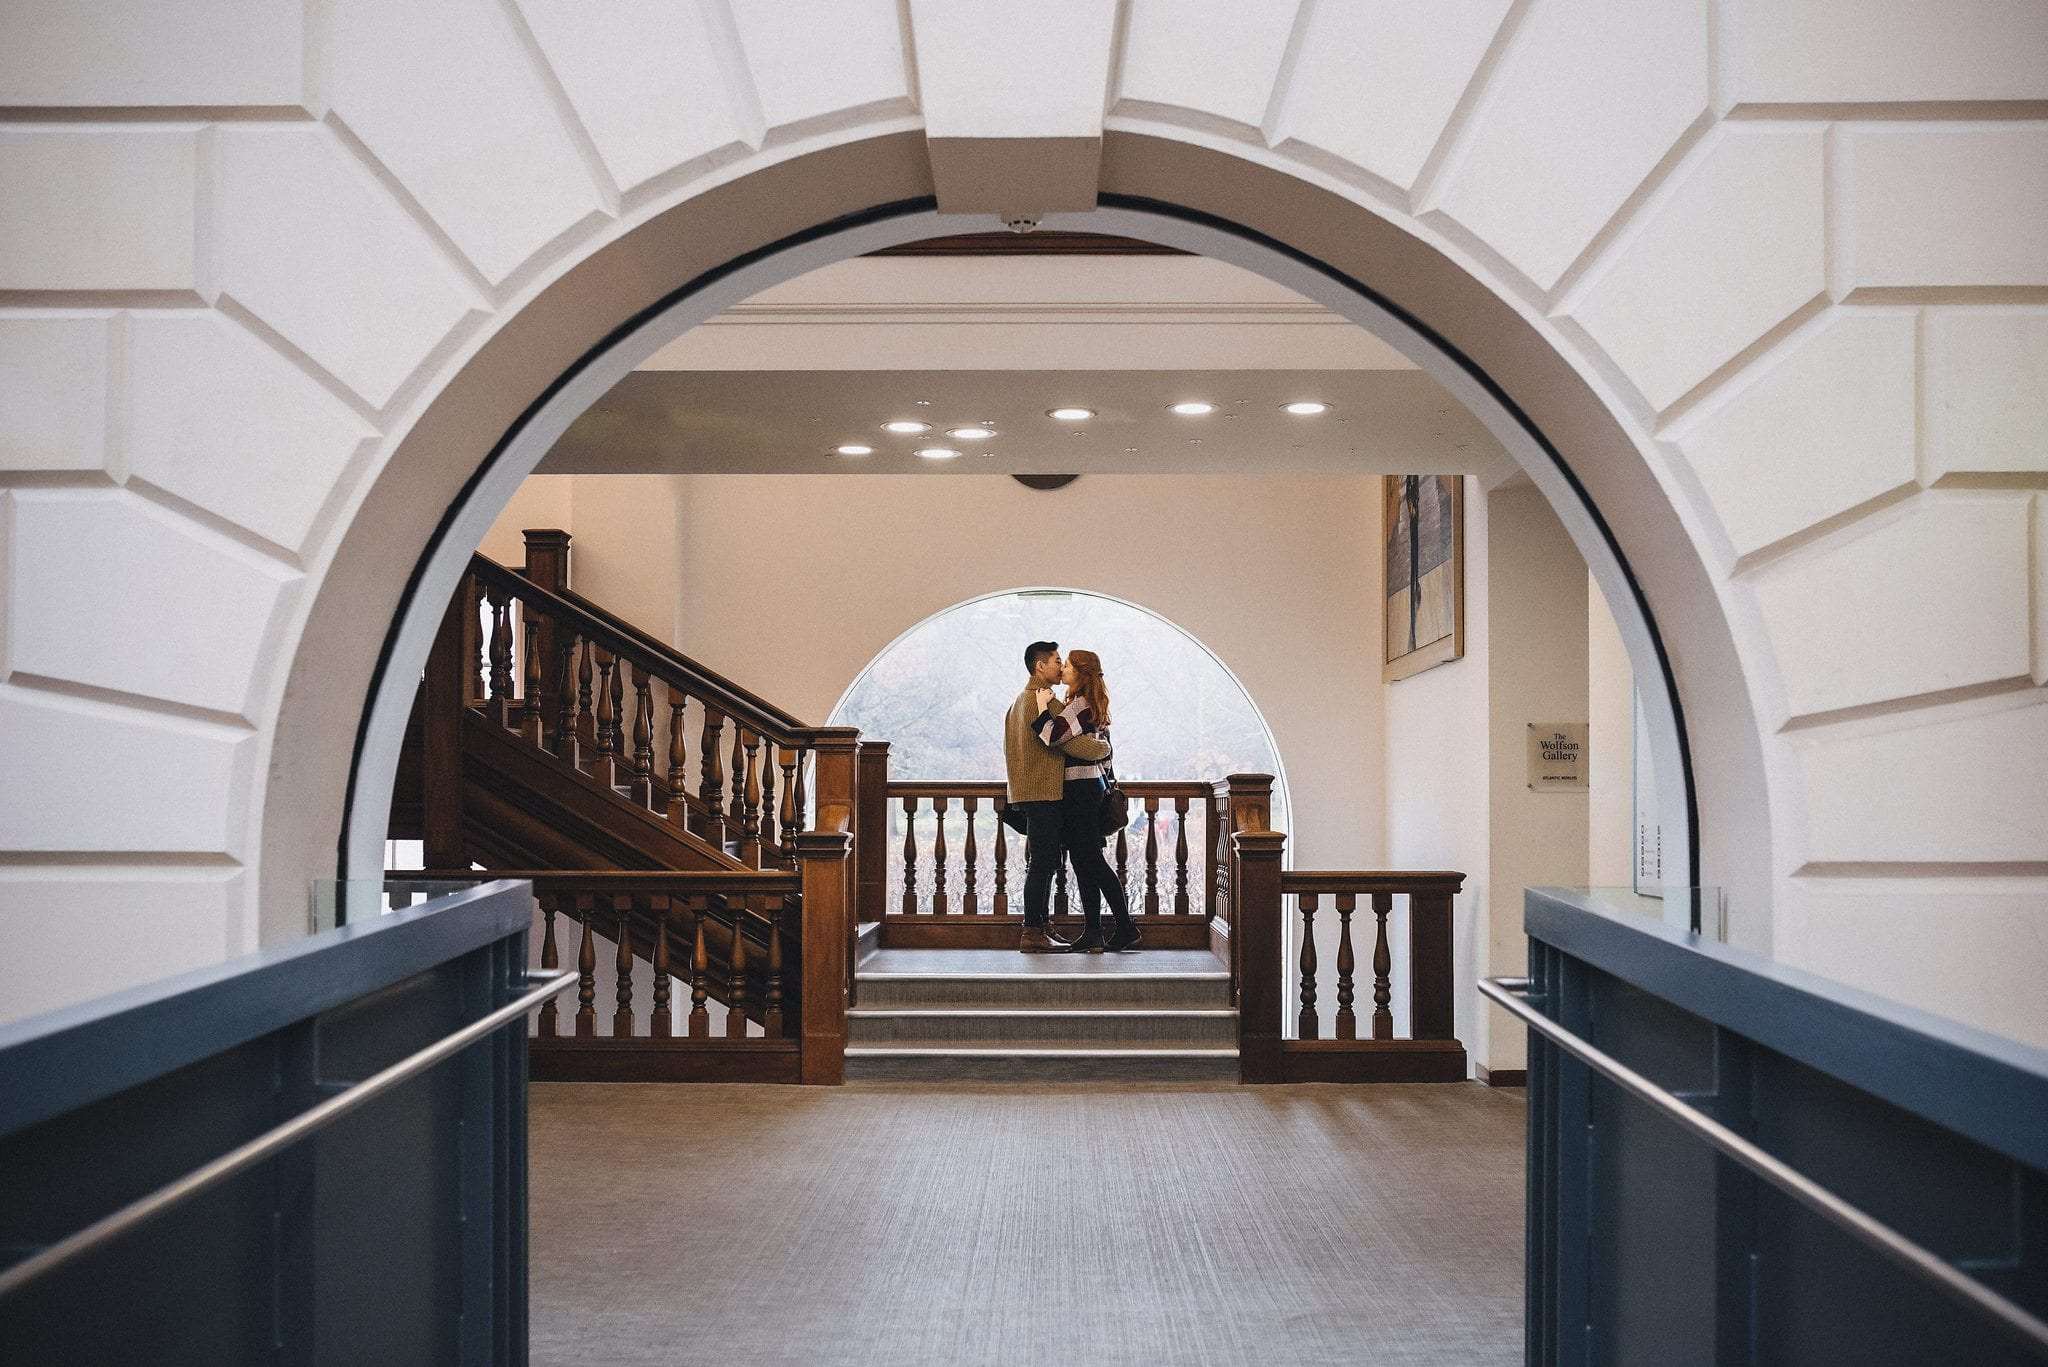 Engaged couple kissing in front of a large rounded window